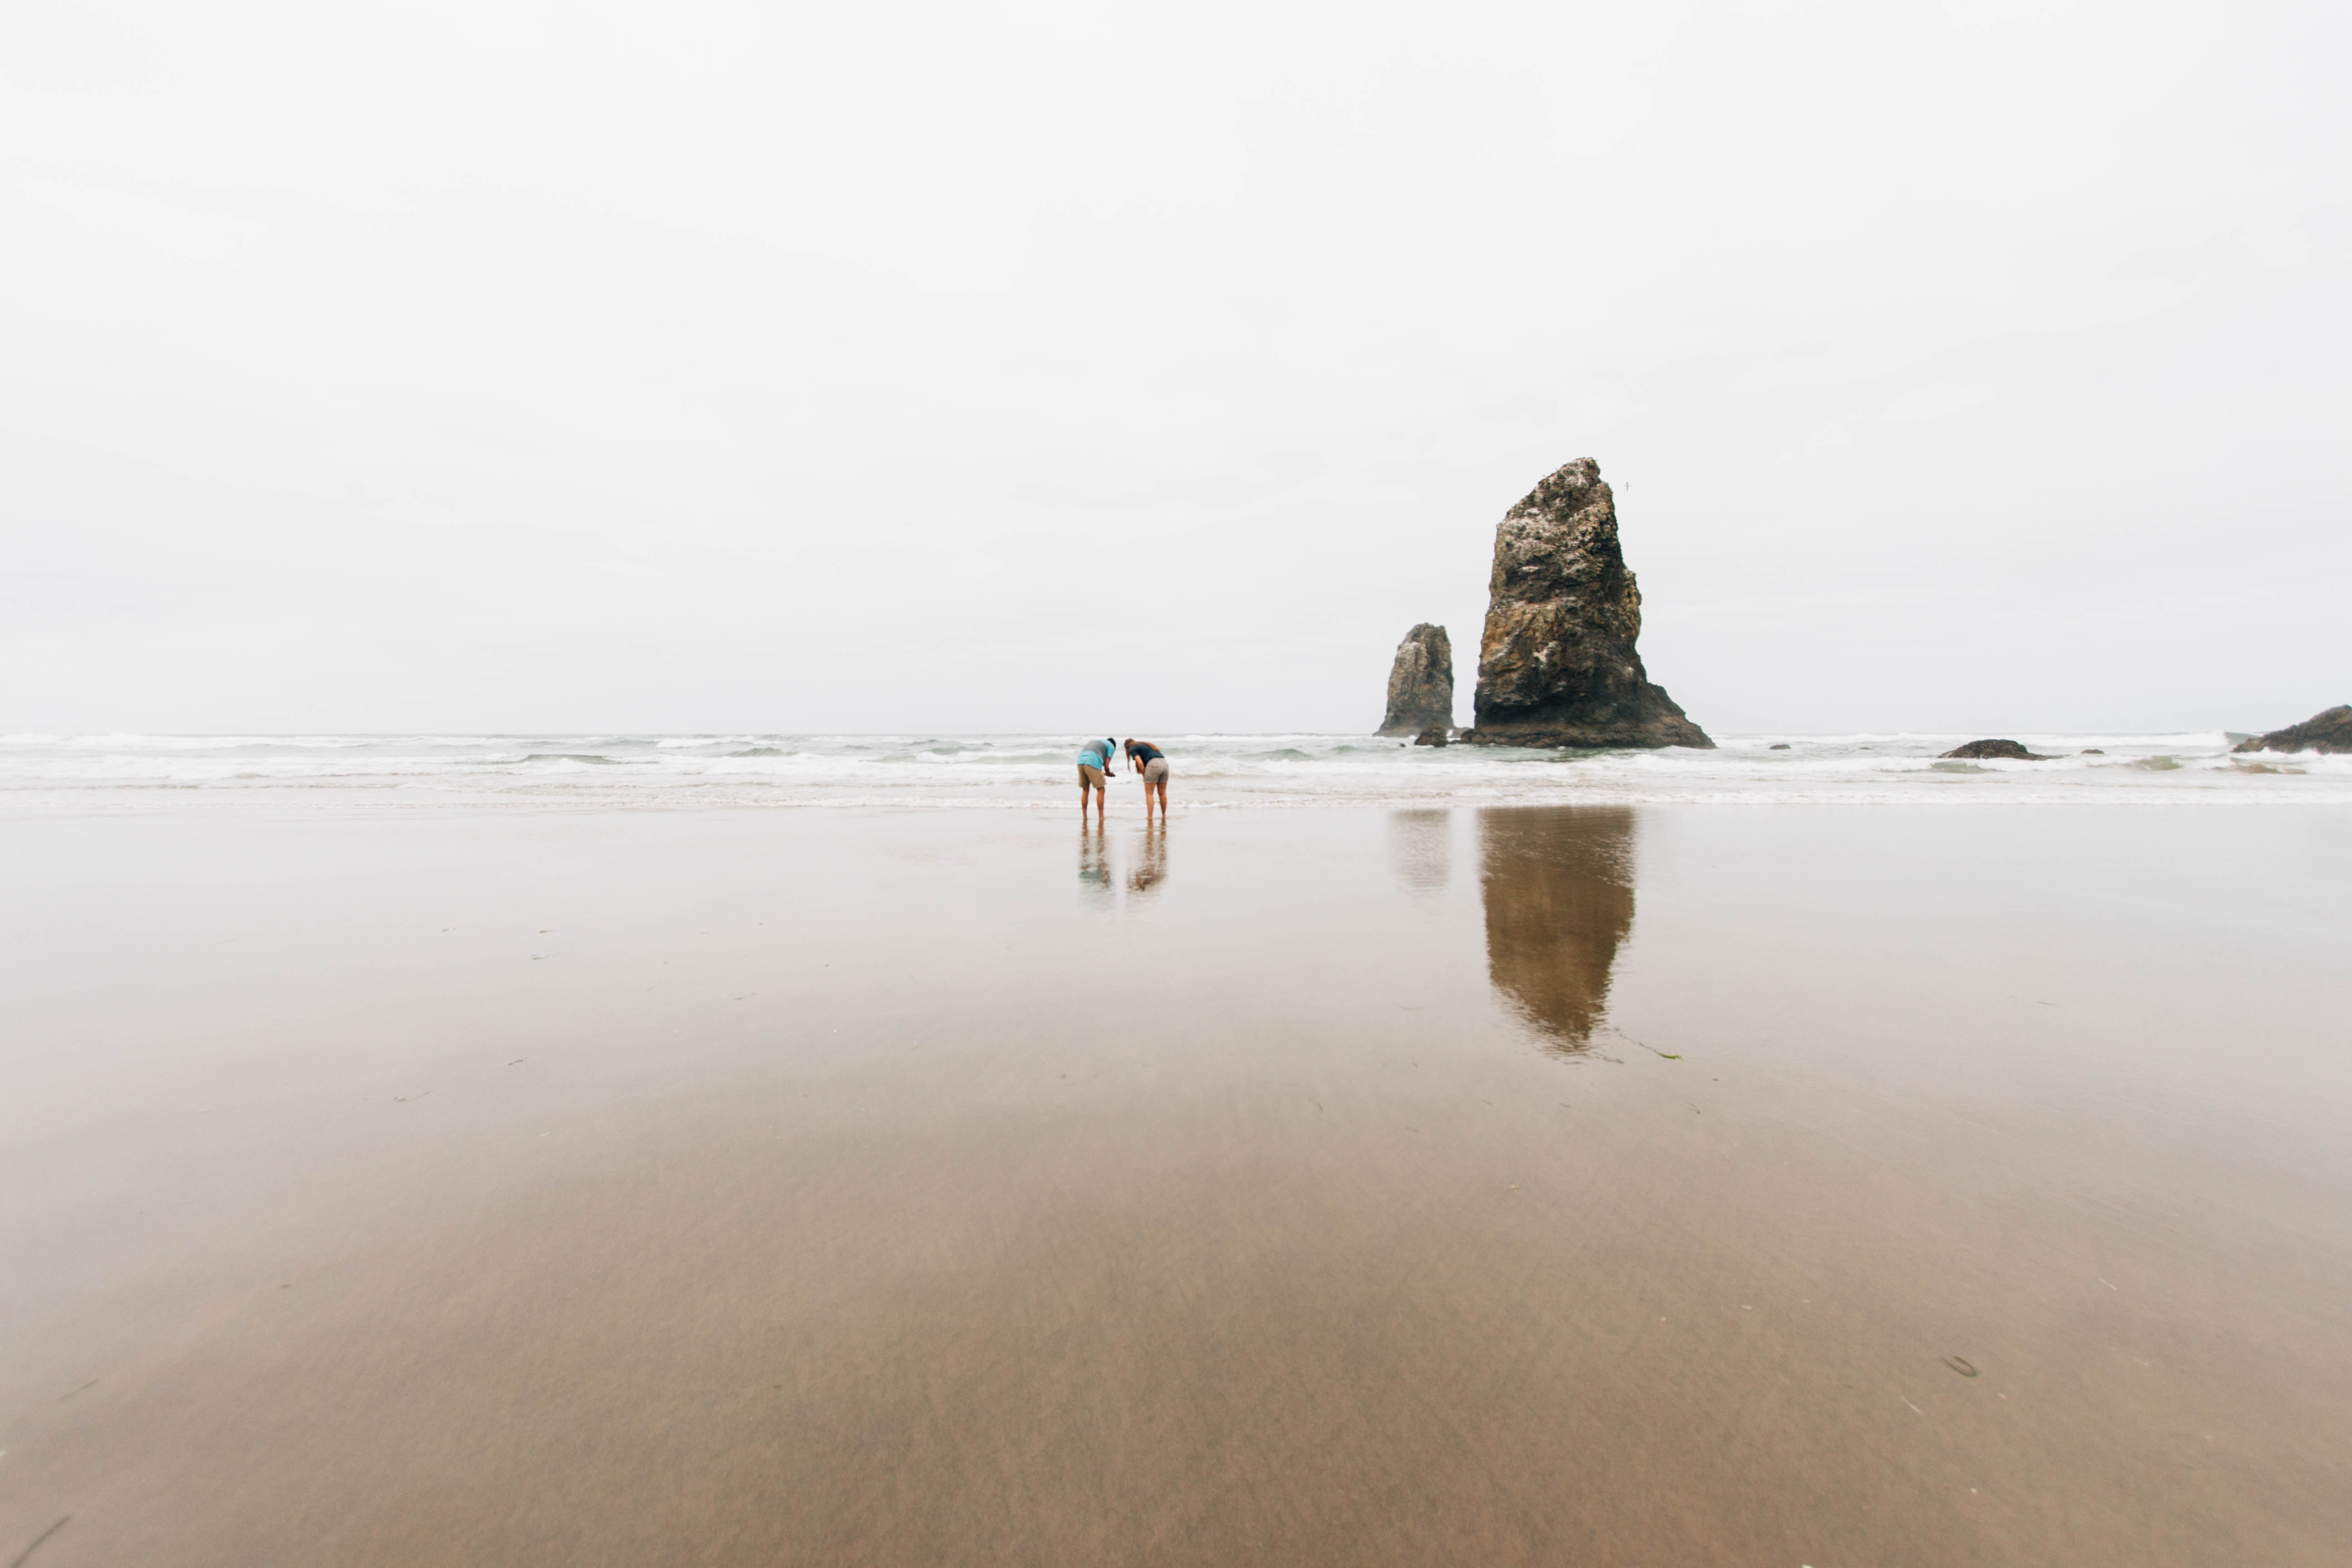 Two persons standing on a wet sand beach in Oregon